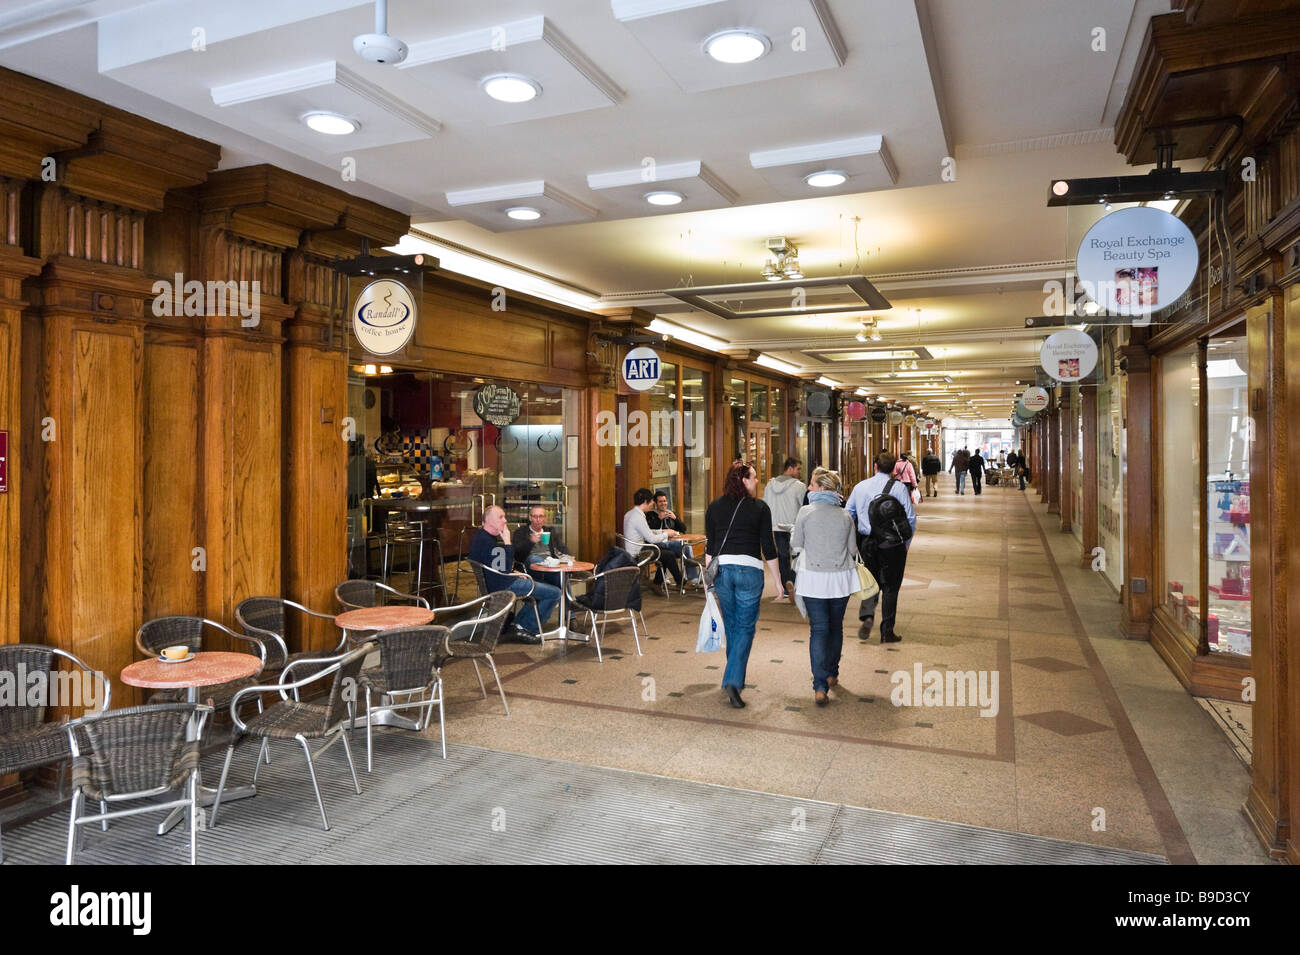 Shops and cafe in the Royal Exchange Arcade in the city centre, Manchester, England - Stock Image